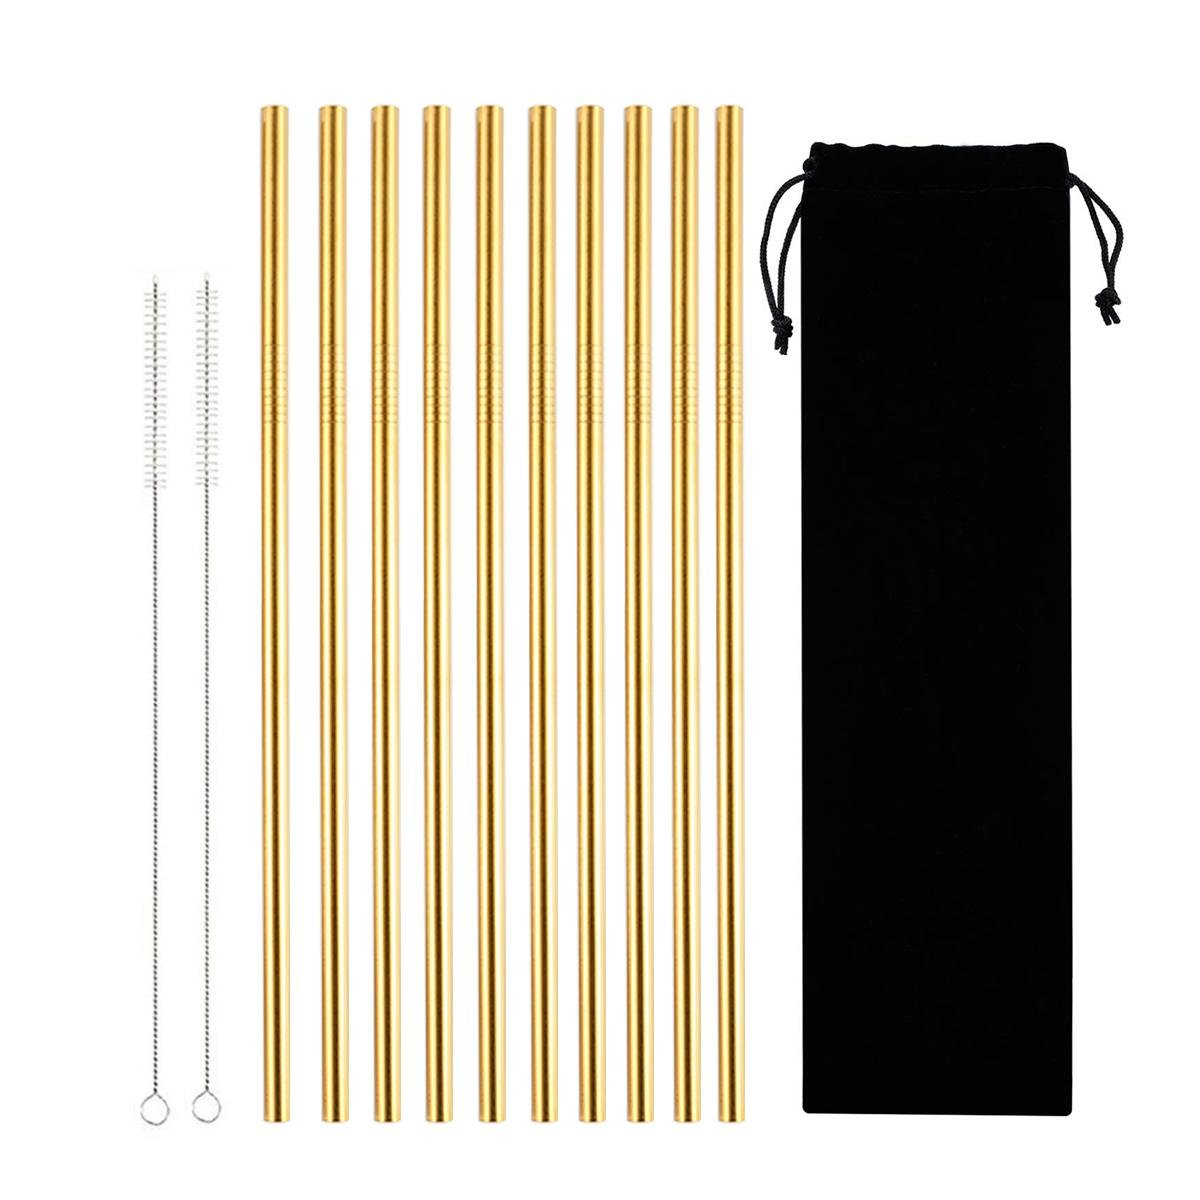 Stainless Steel Straws, LEEGOAL 10Pcs Reusable Straws Metal Drinking Straws Eco-Friendly Long Straight Straws for 20oz Tumblers Cups Mugs Cold Beverage with 2 Cleaning Brushes and Carry Bag, Gold